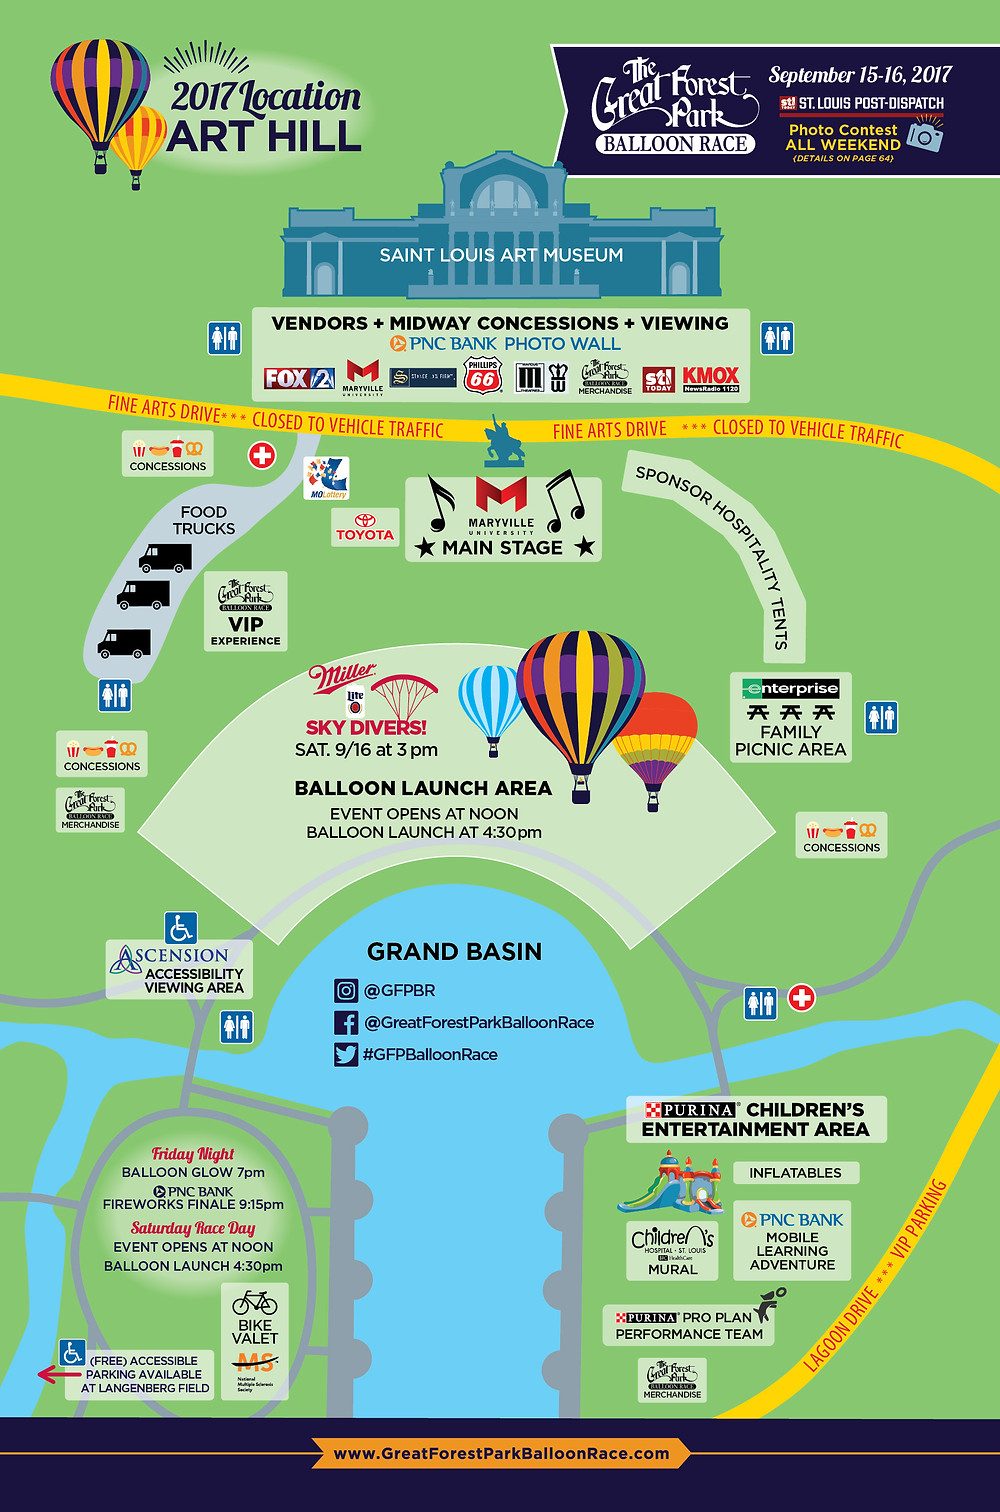 Great Forest Park Balloon Race Map 2017